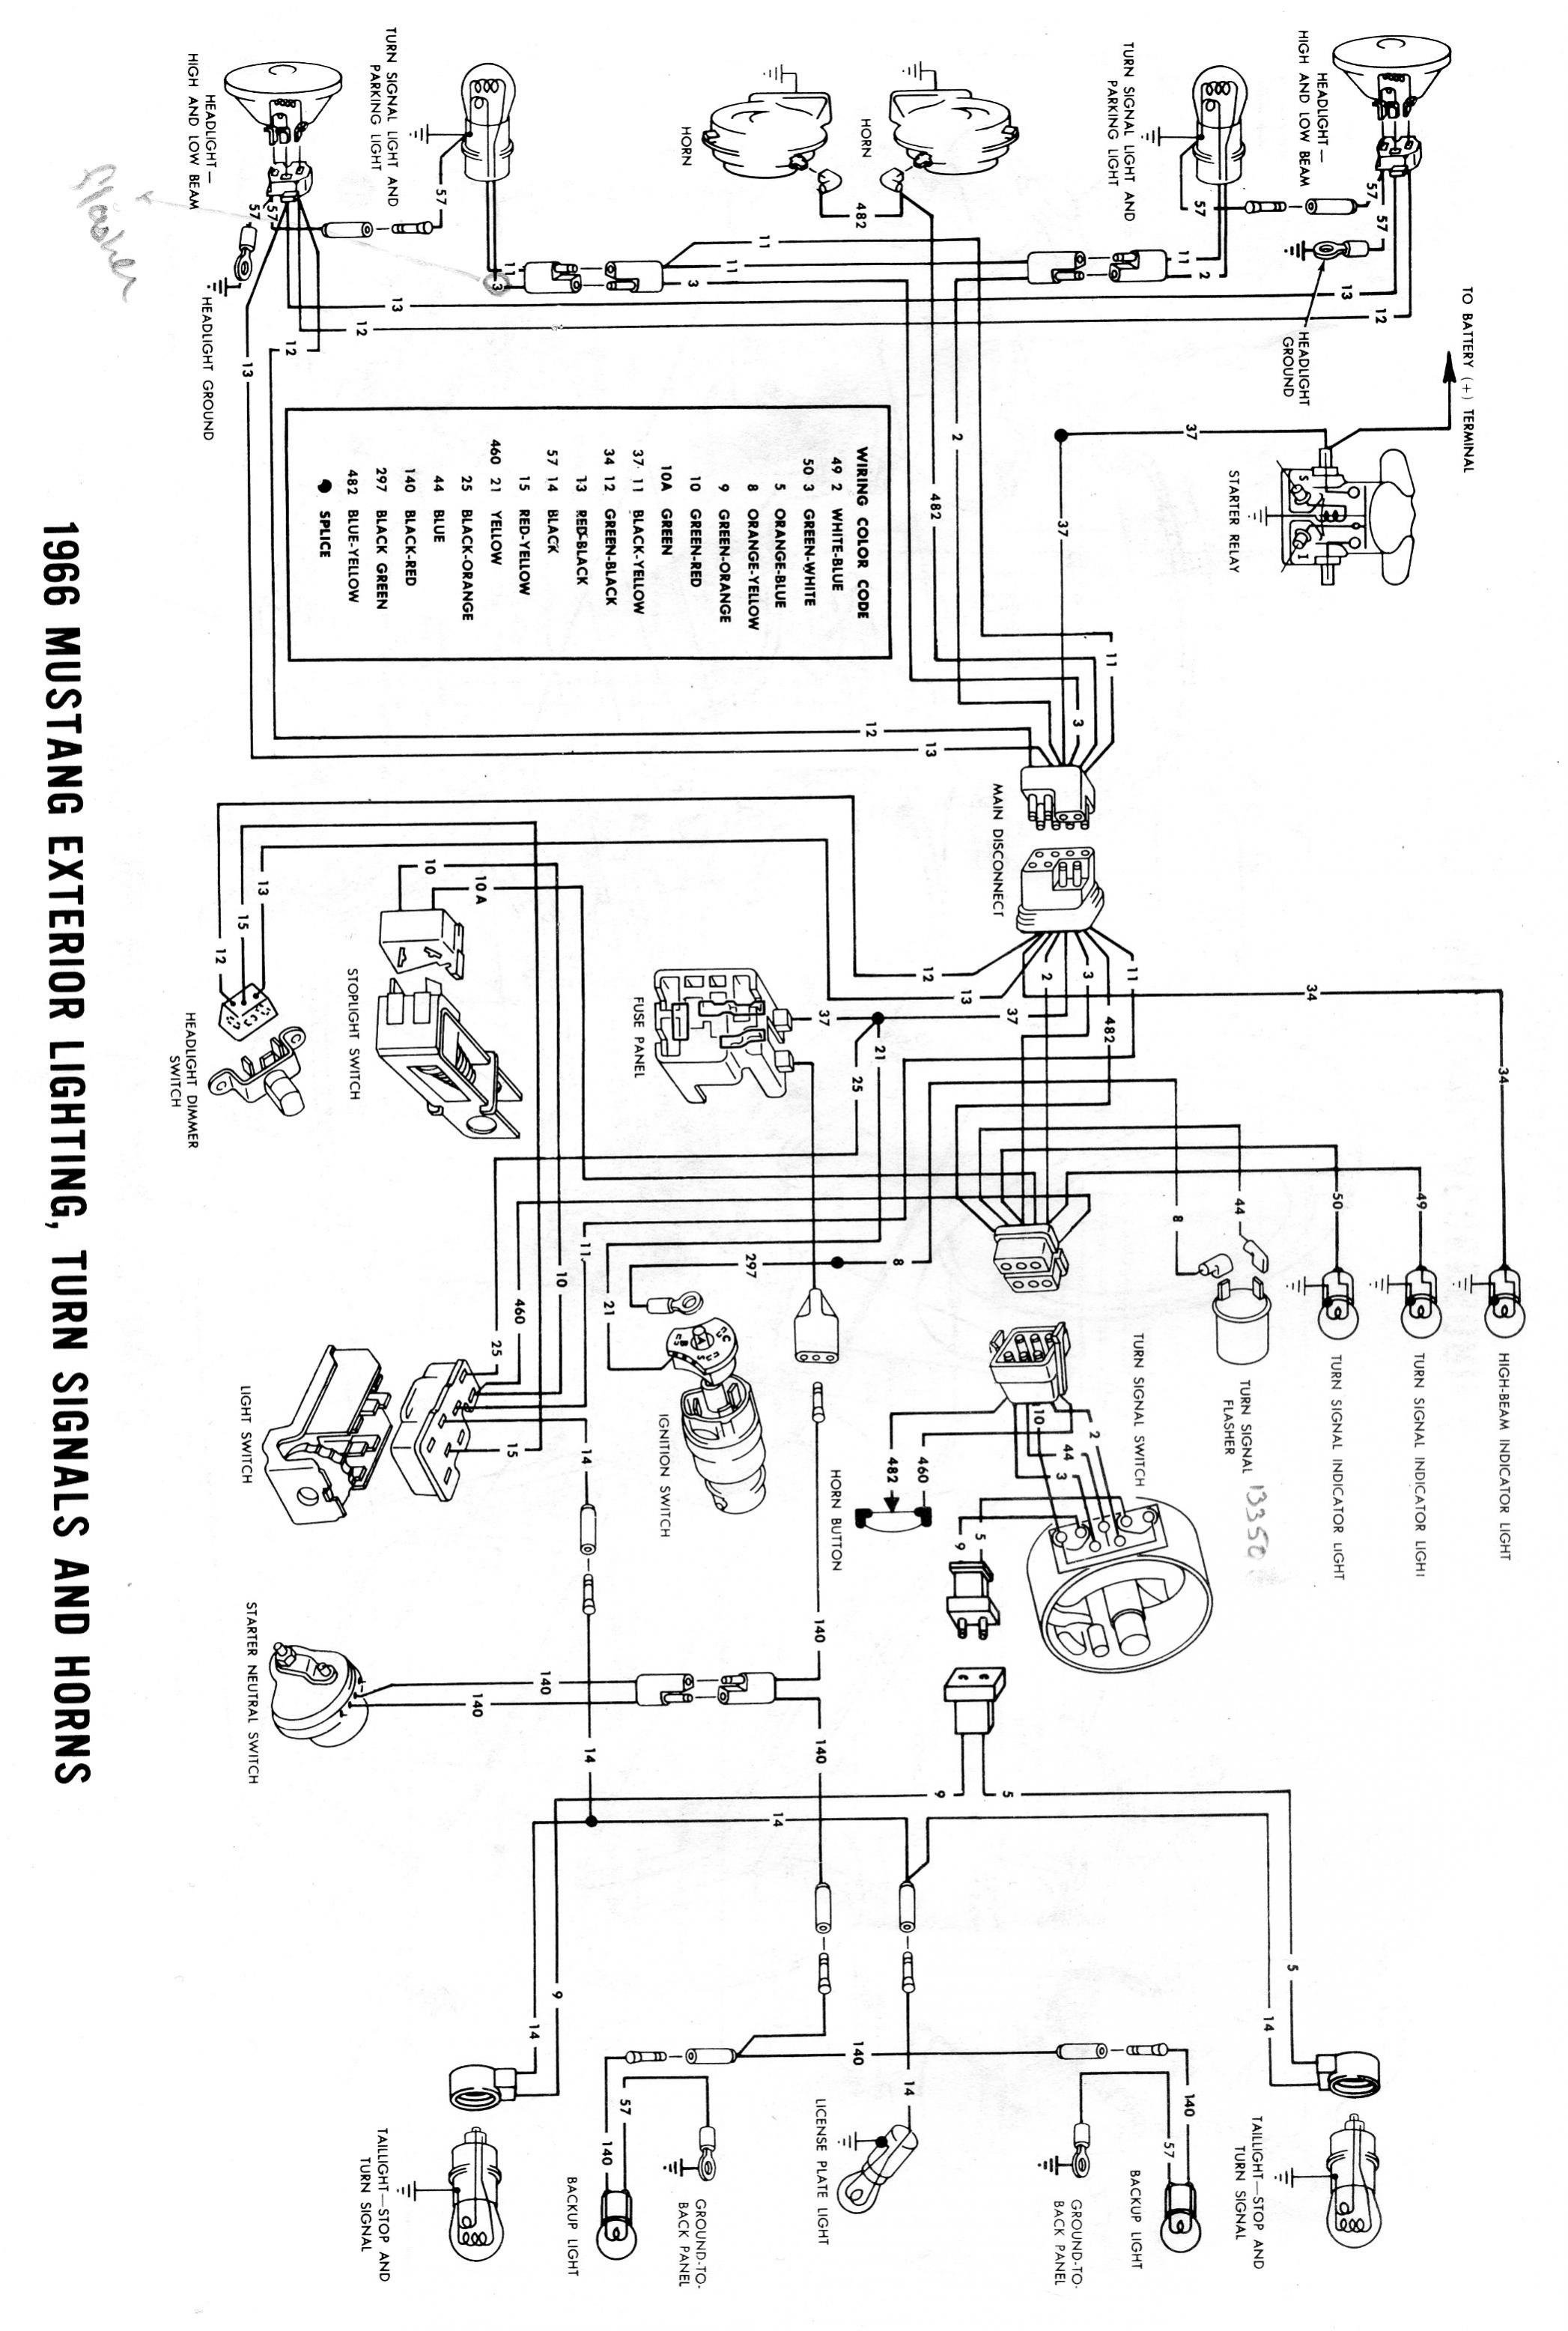 1968 Mustang Turn Signal Diagram Wiring Data 95 Engine 64 Schematic Carburetor 1965